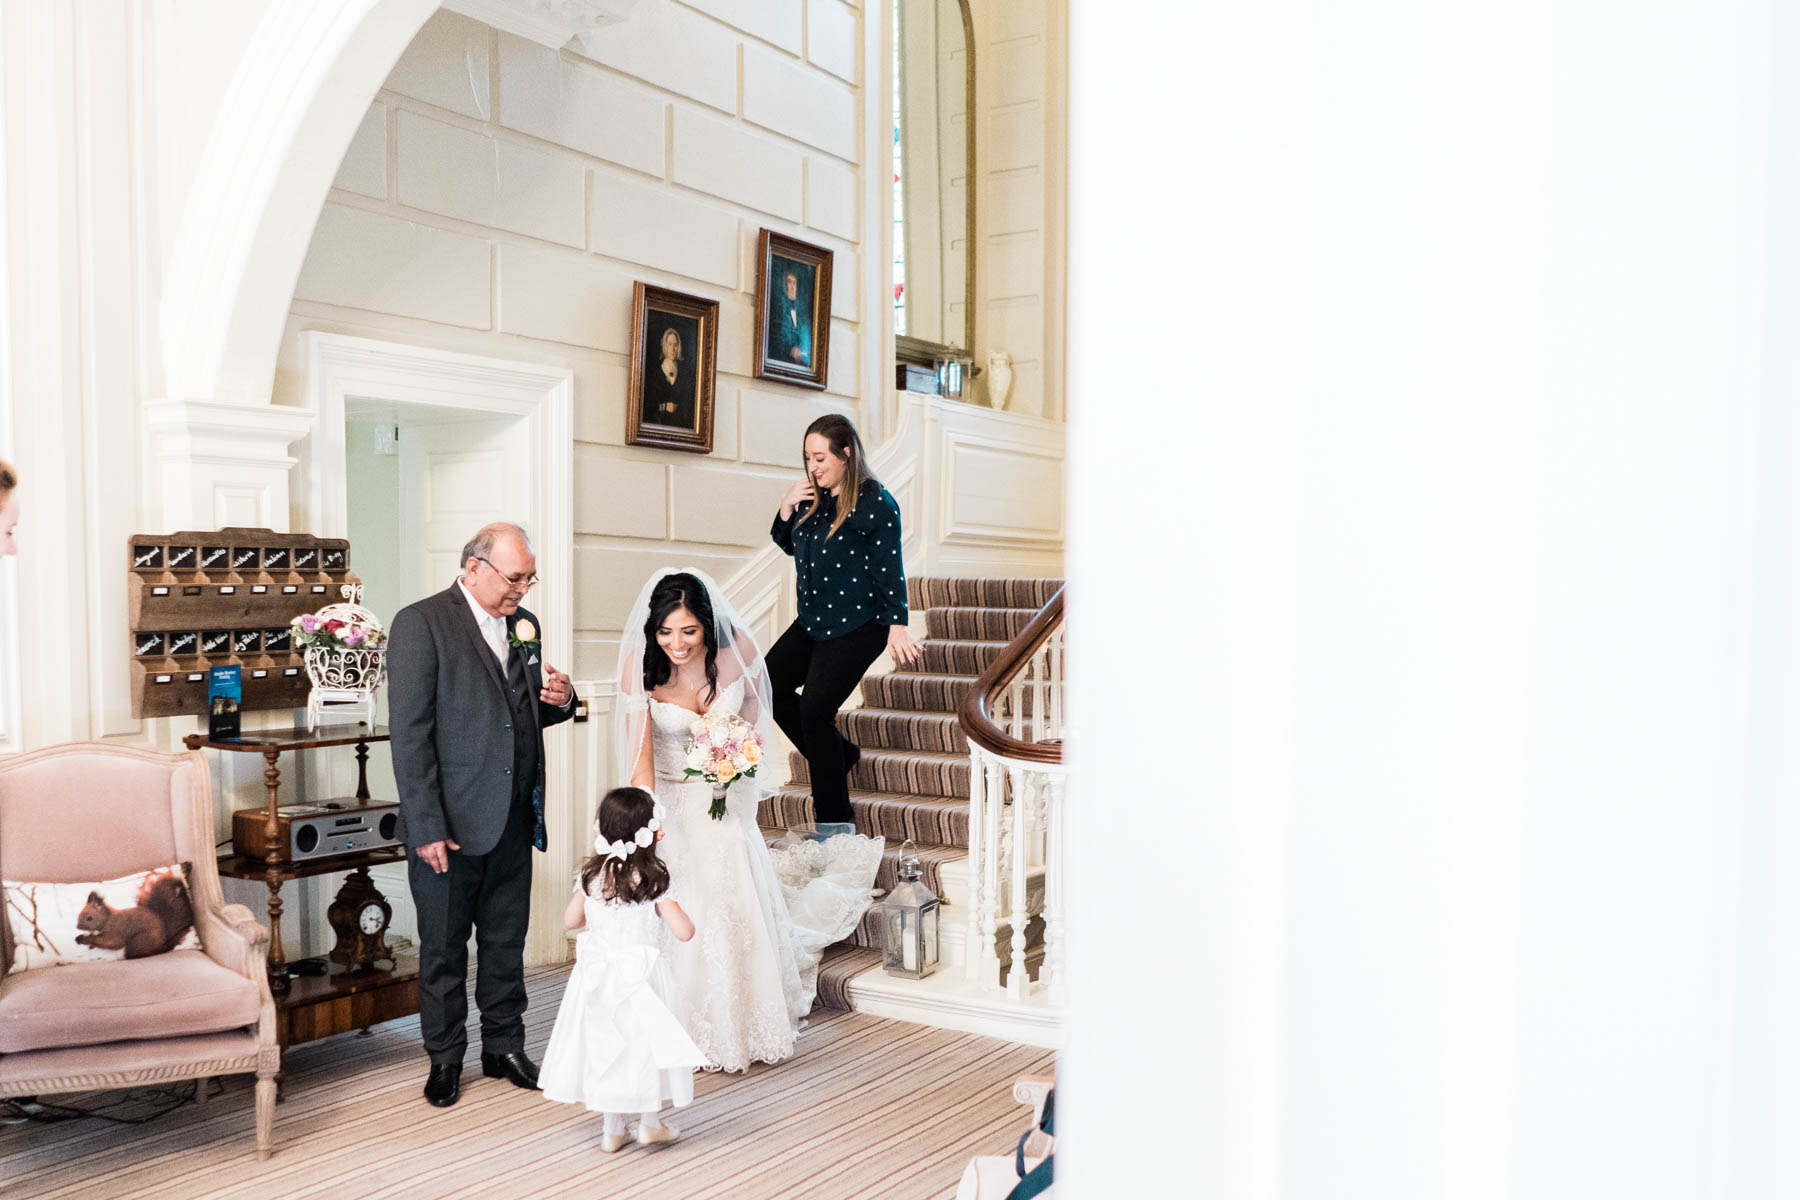 Eshott Hall Wedding Photographer | north east wedding photographer